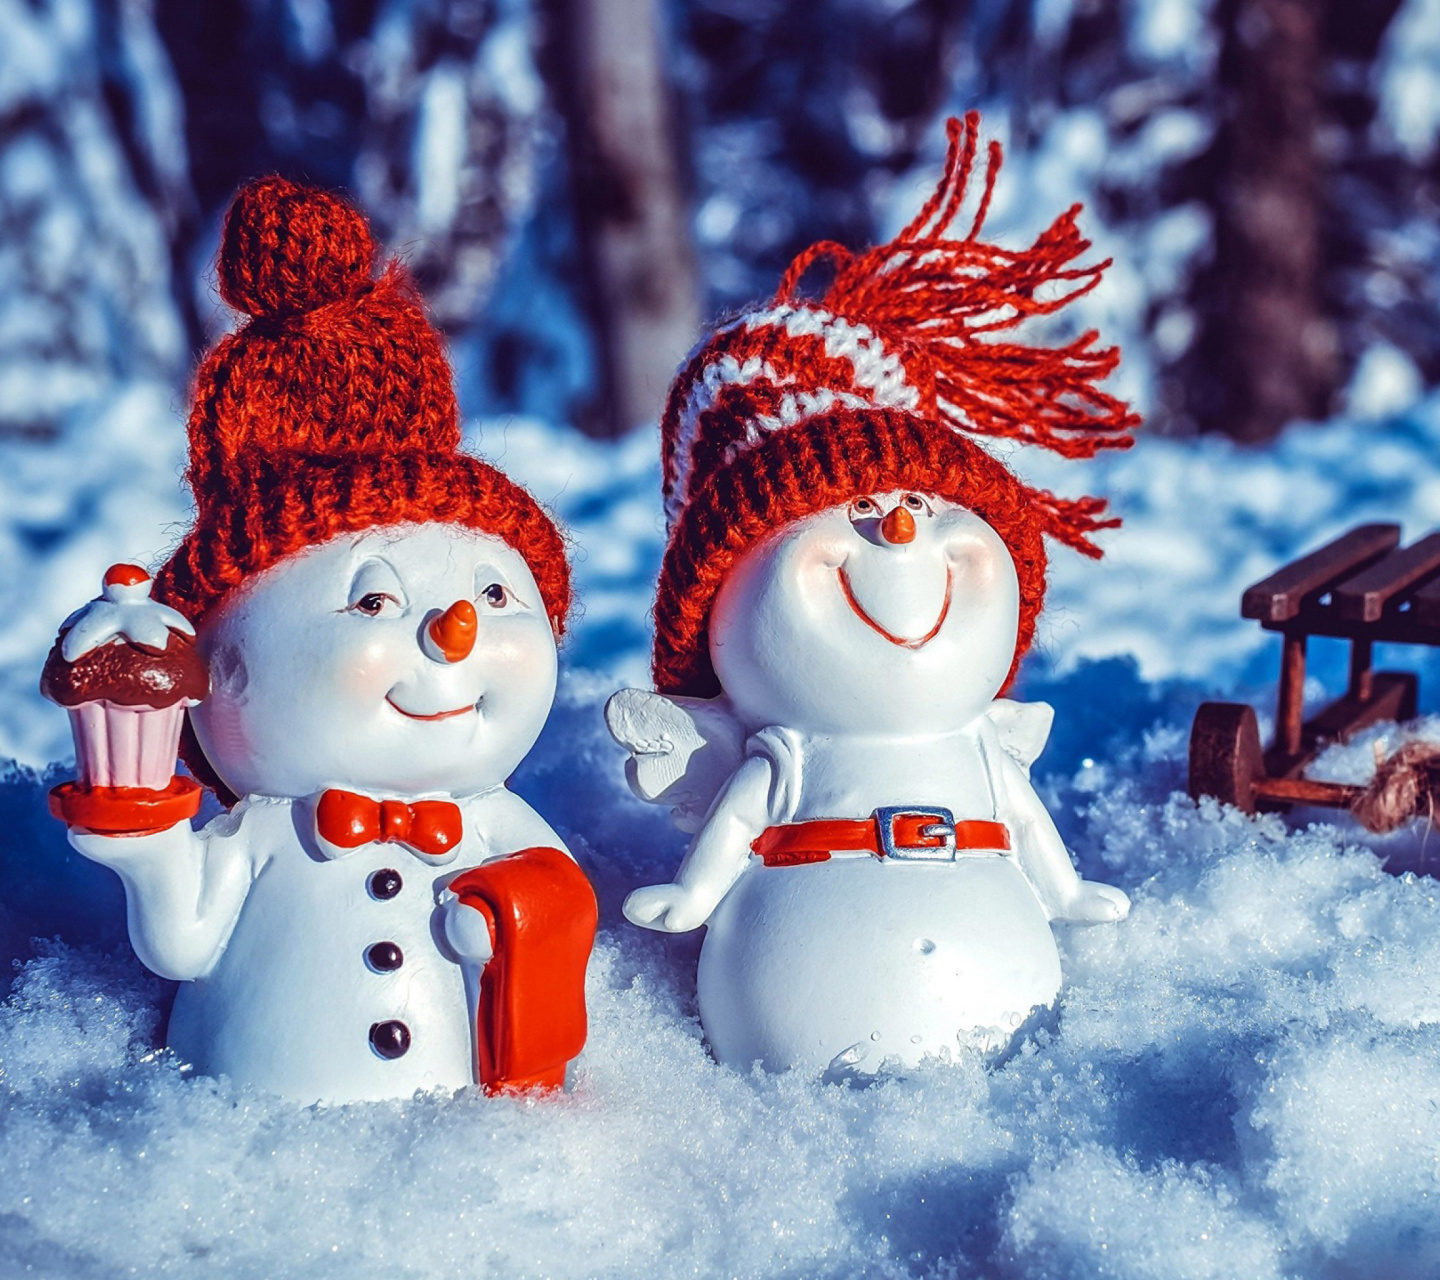 Das Snowman HD Wallpaper 1440x1280